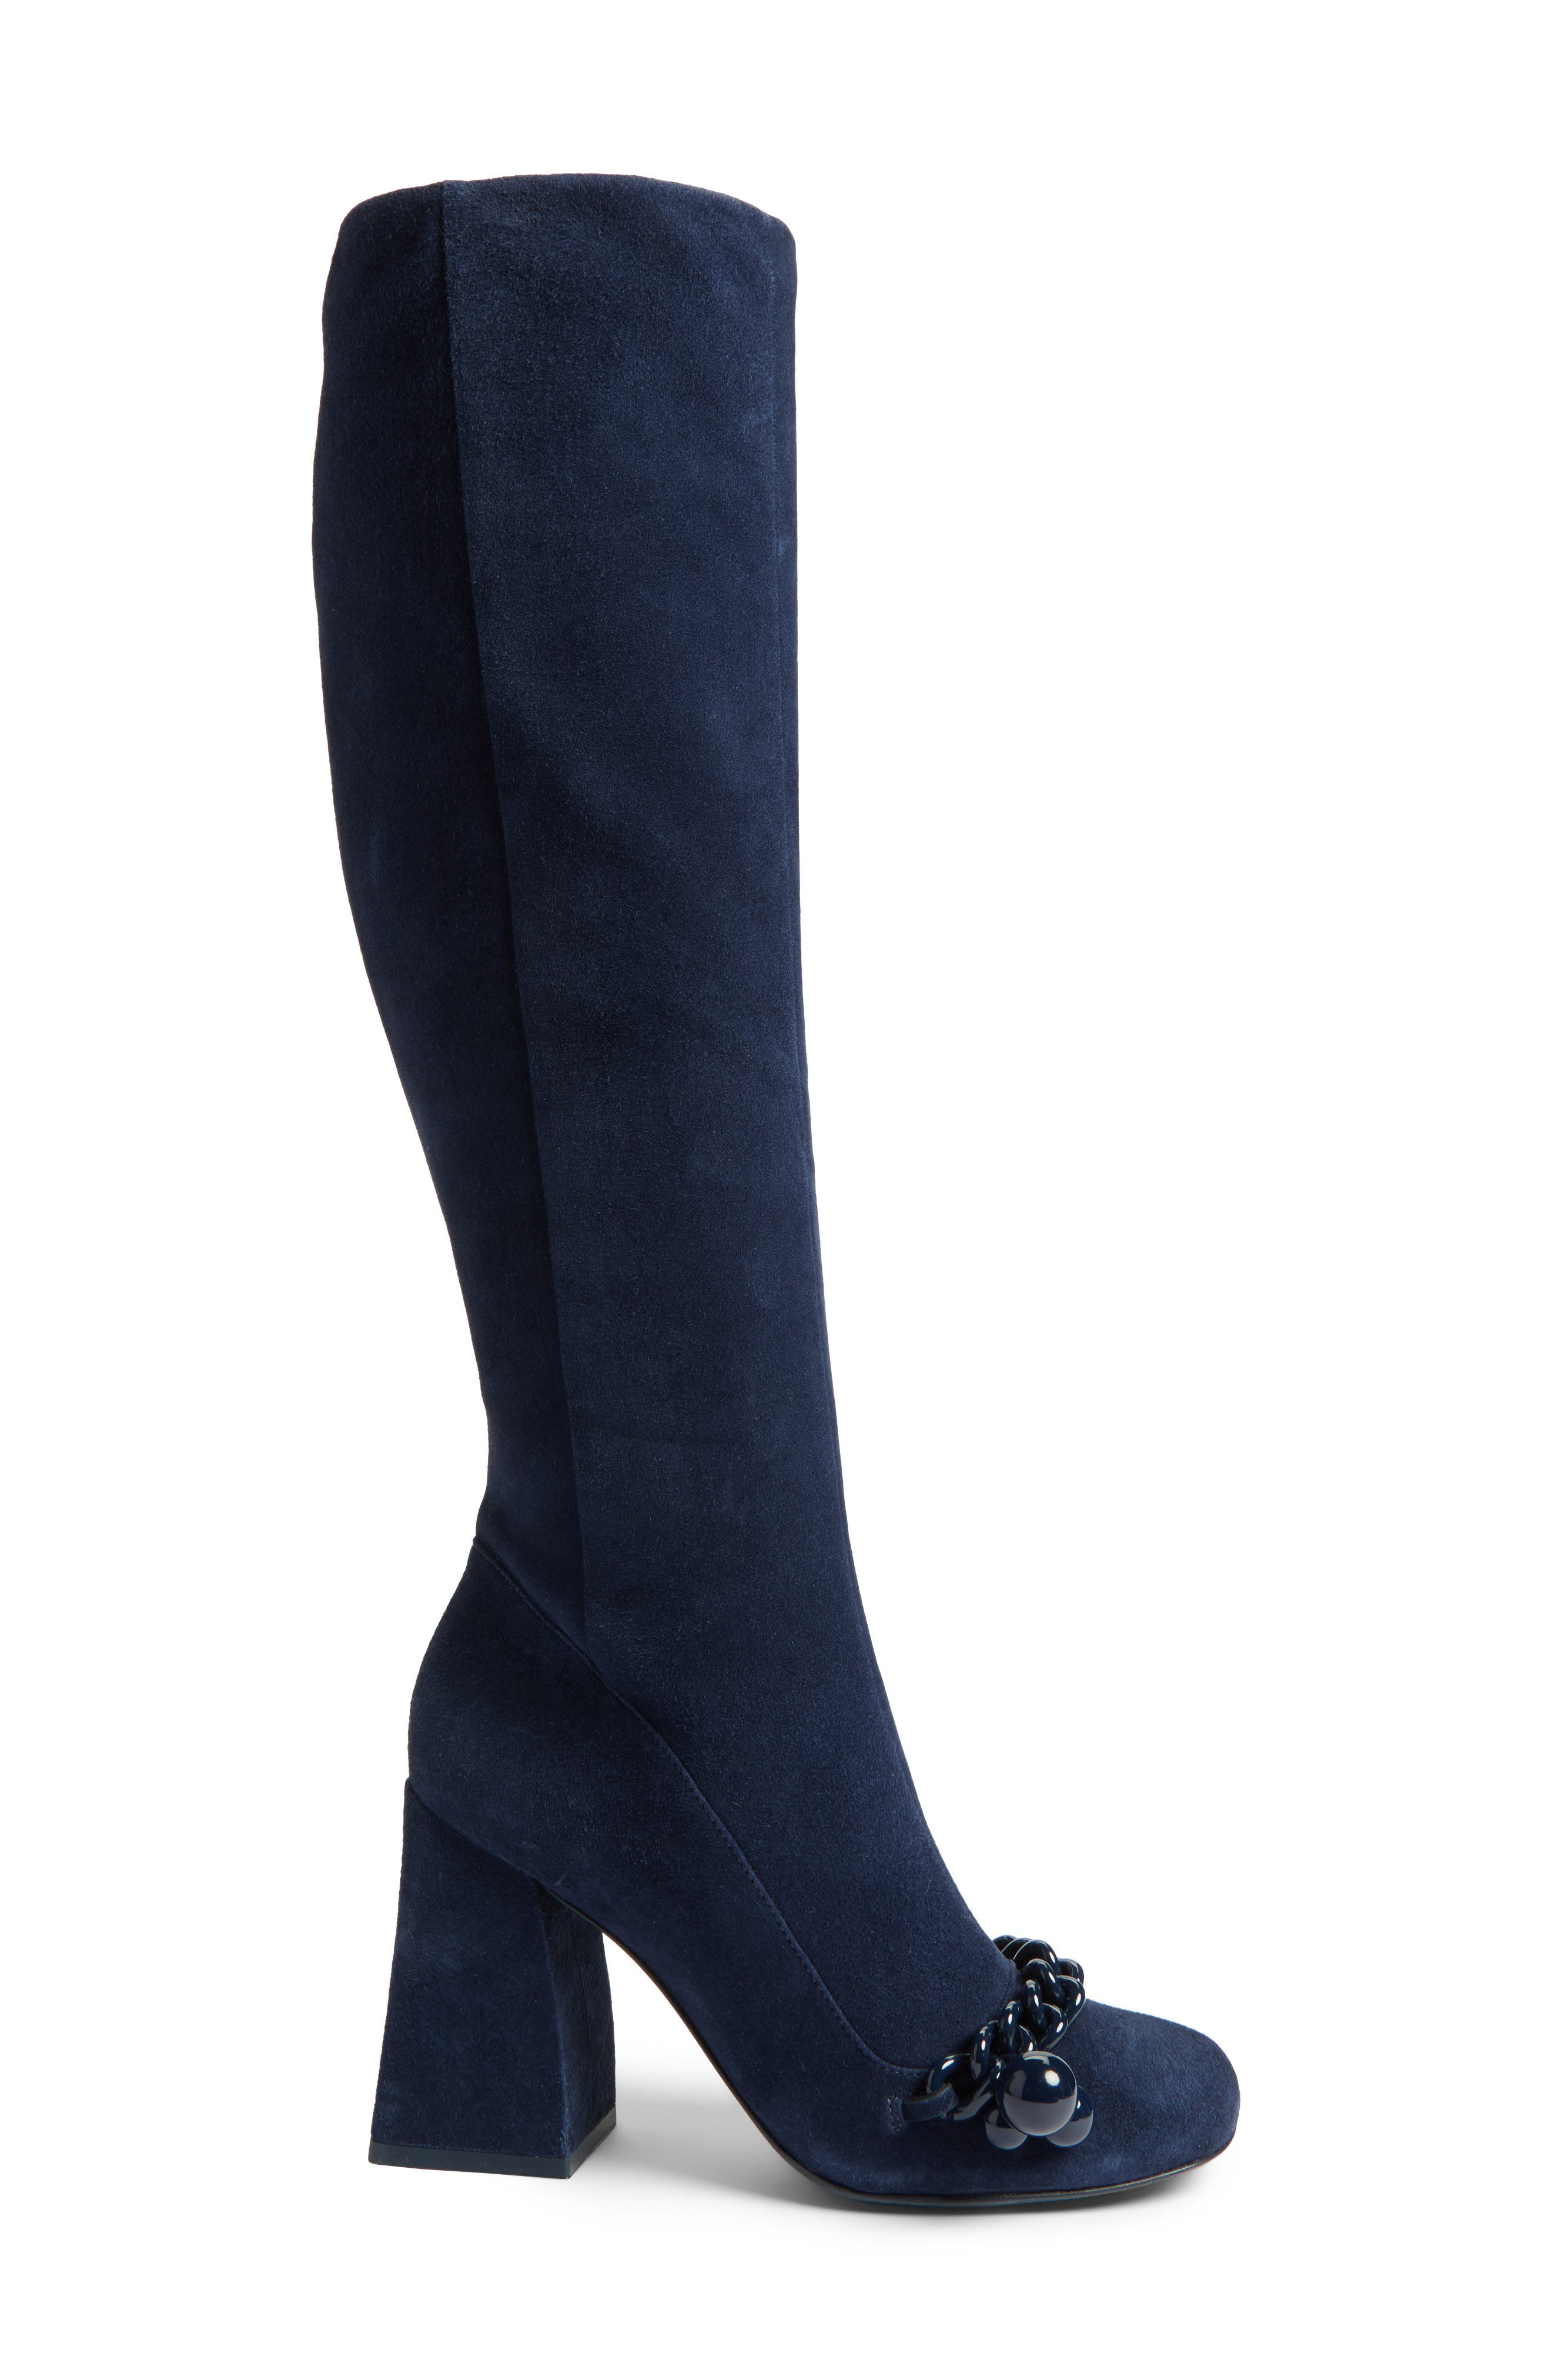 Alternate Image 3  - Tory Burch Addison Flared Heel Boot (Women)